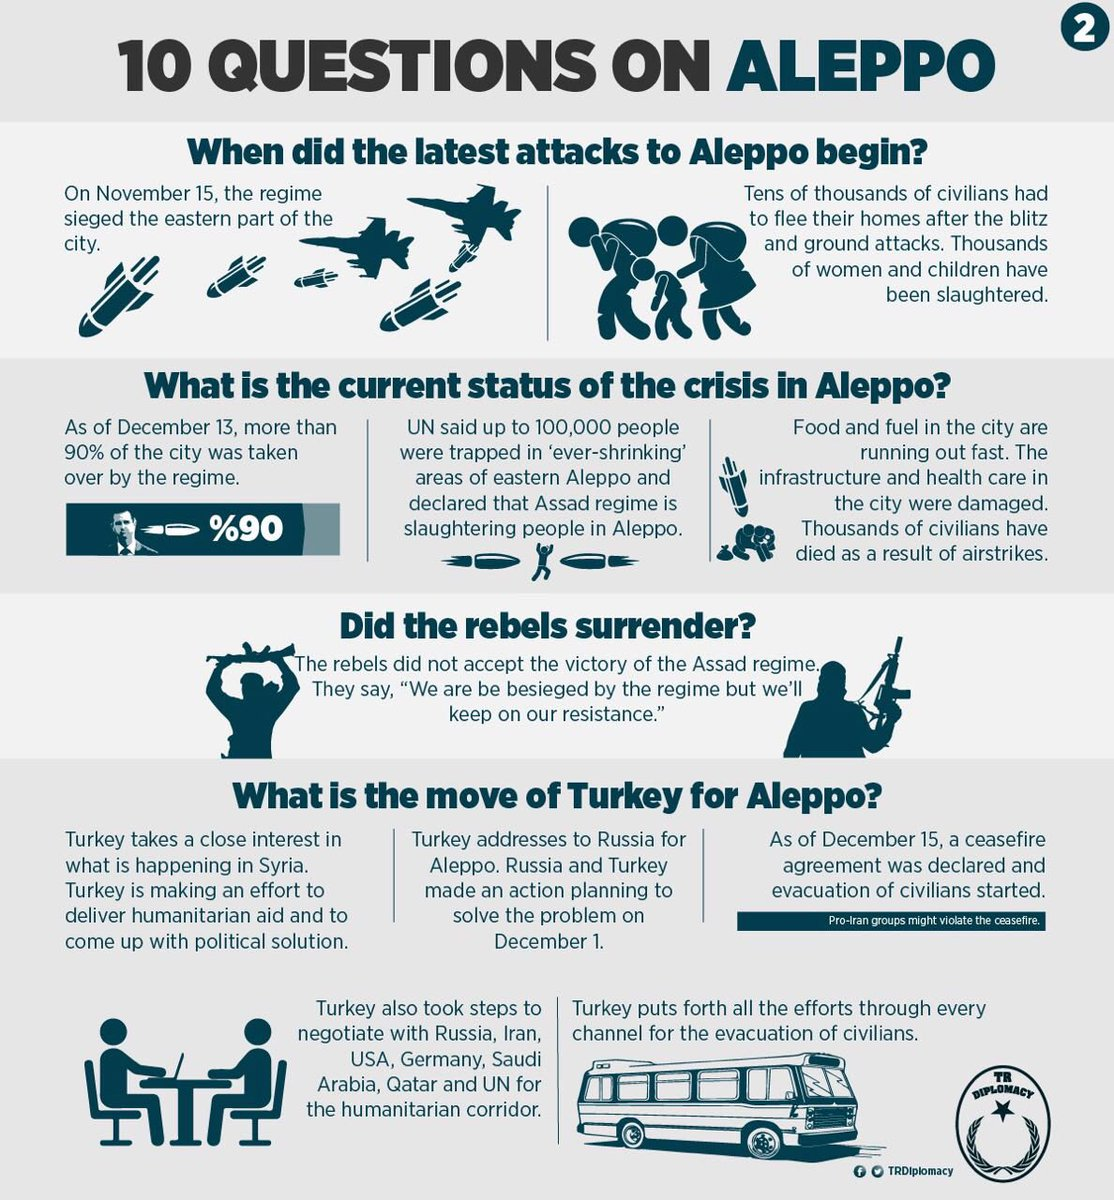 10 Questions on Aleppo